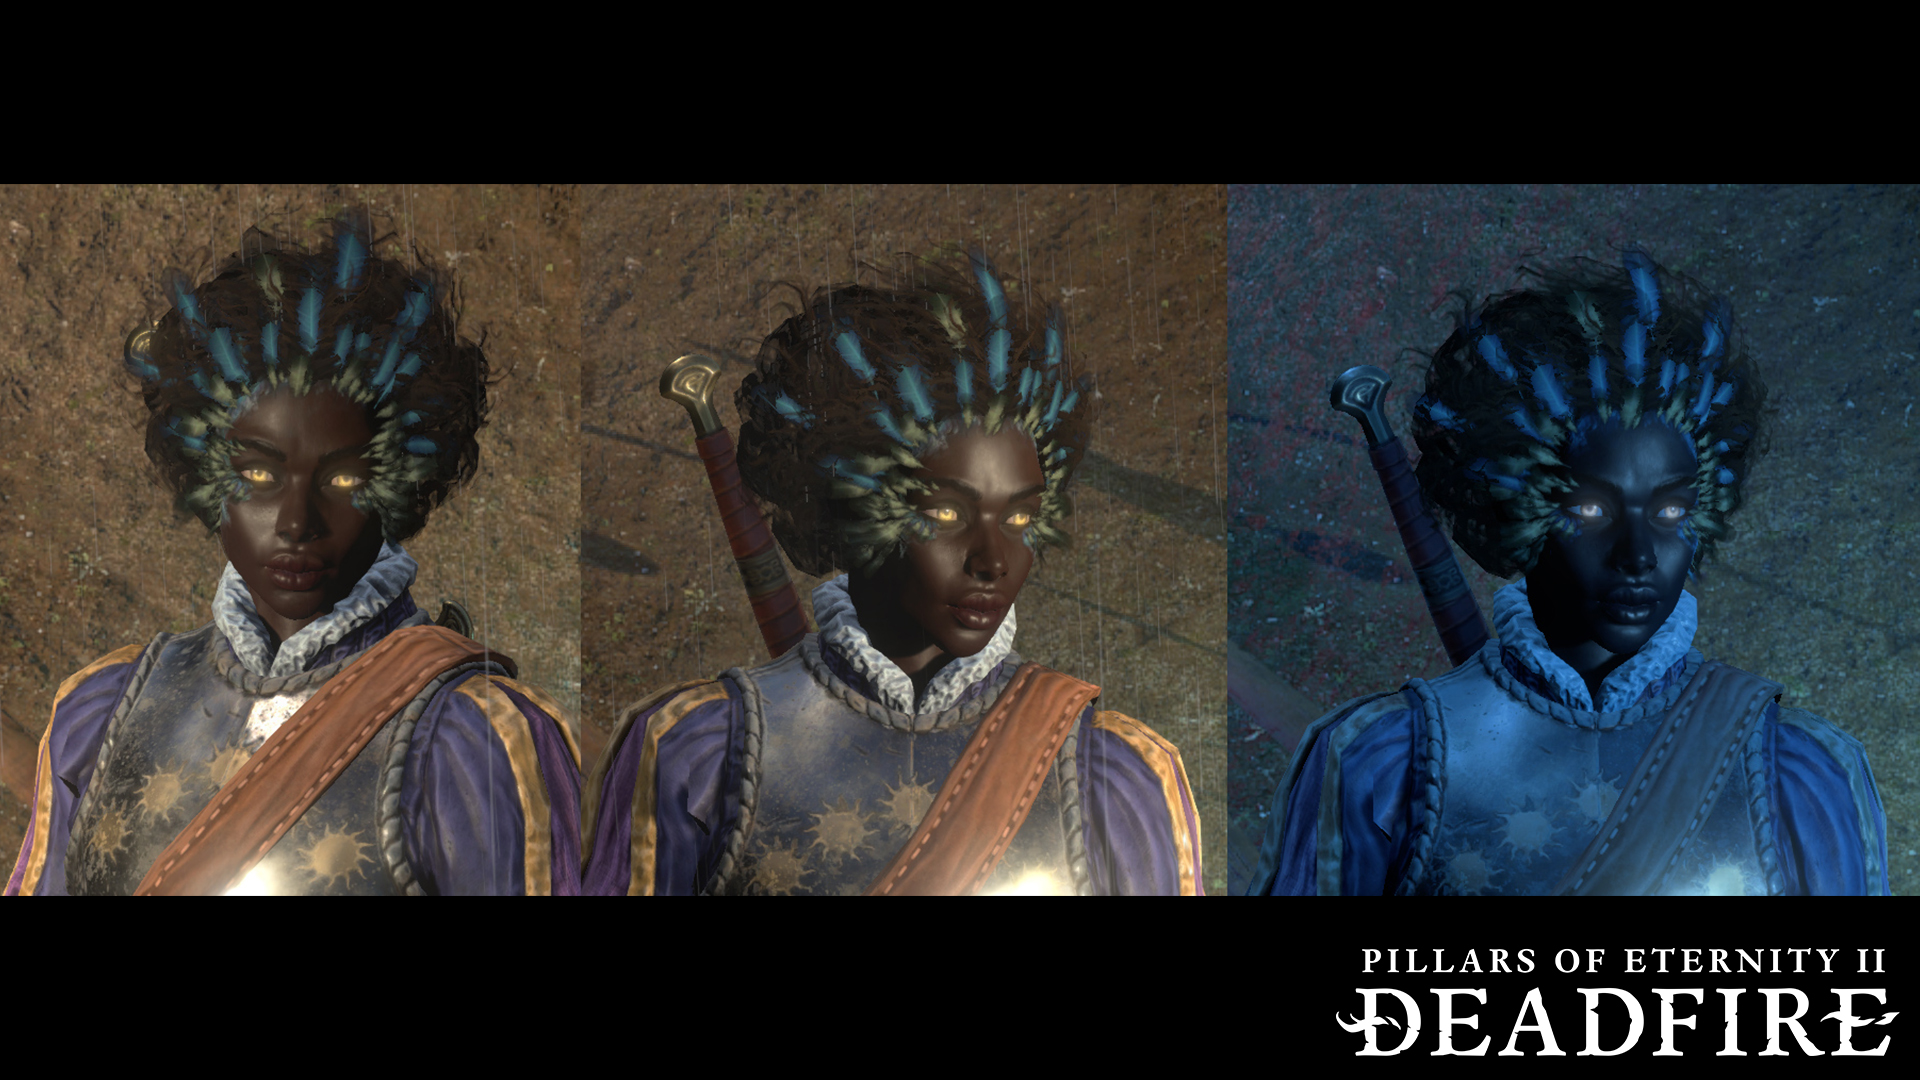 Pillars of Eternity II Deadfire Update 28 Factions of the Deadfire Part I on Fig